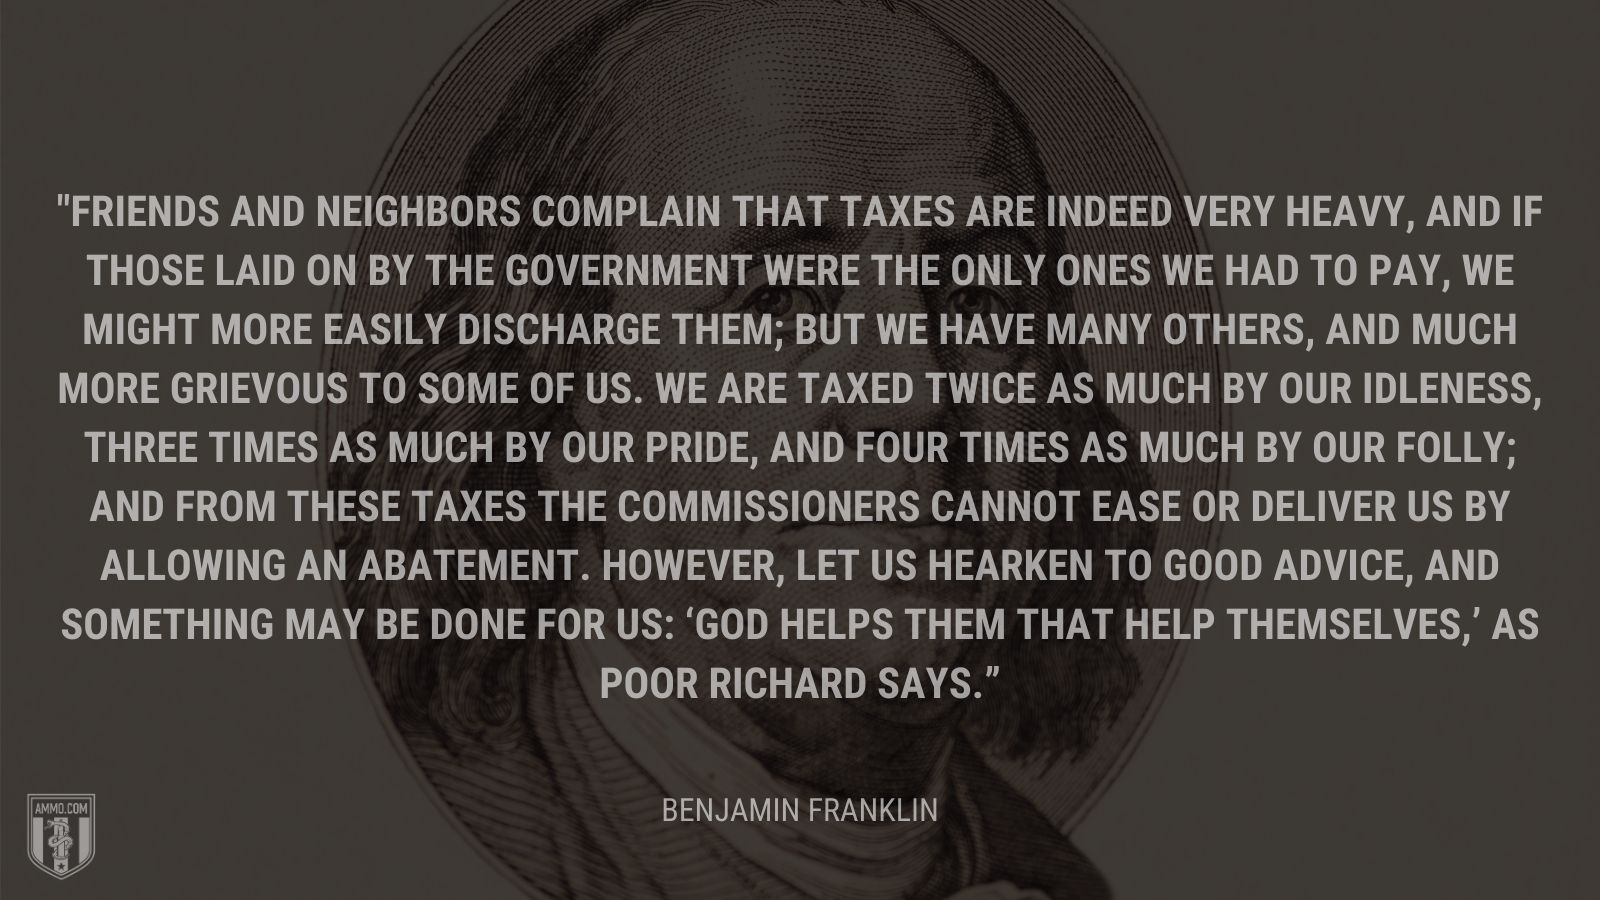 """Friends and neighbors complain that taxes are indeed very heavy, and if those laid on by the government were the only ones we had to pay, we might more easily discharge them; but we have many others, and much more grievous to some of us. We are taxed twice as much by our idleness, three times as much by our pride, and four times as much by our folly; and from these taxes the commissioners cannot ease or deliver us by allowing an abatement. However, let us hearken to good advice, and something may be done for us: 'God helps them that help themselves,' as Poor Richard says."" - Benjamin Franklin"